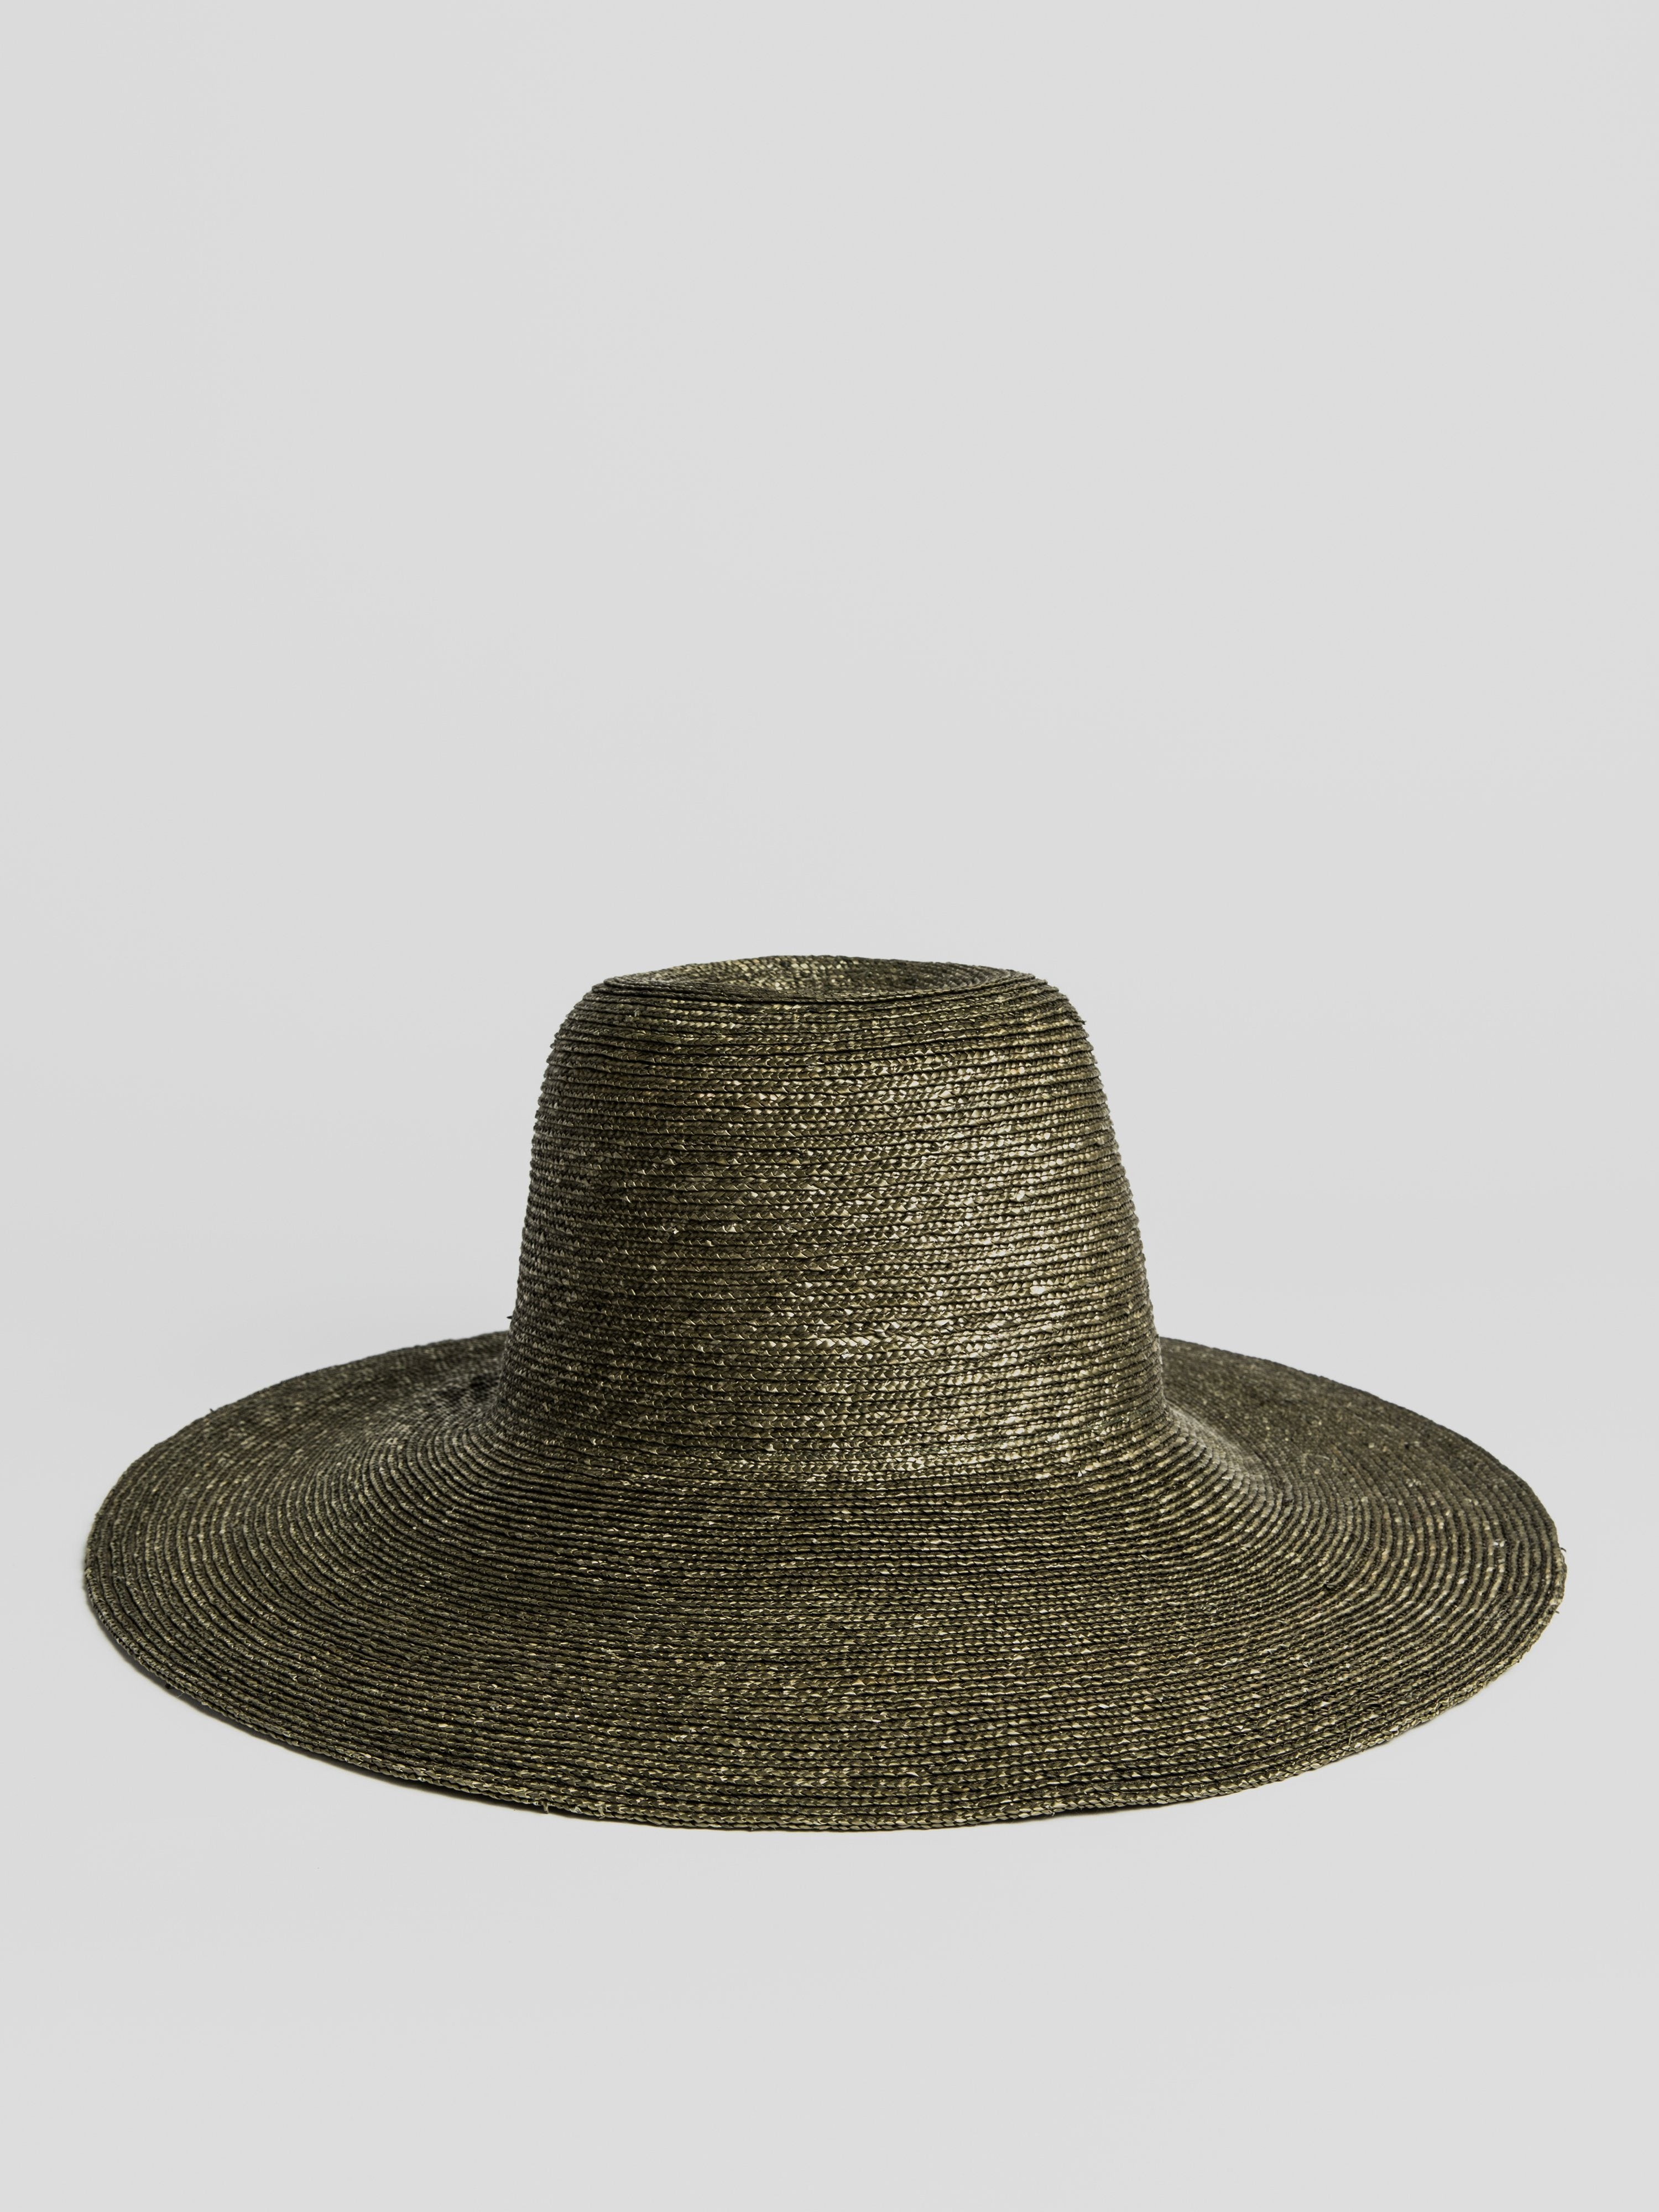 Straw Hat - Braided Capeline in Sage Green Hats éN Hats